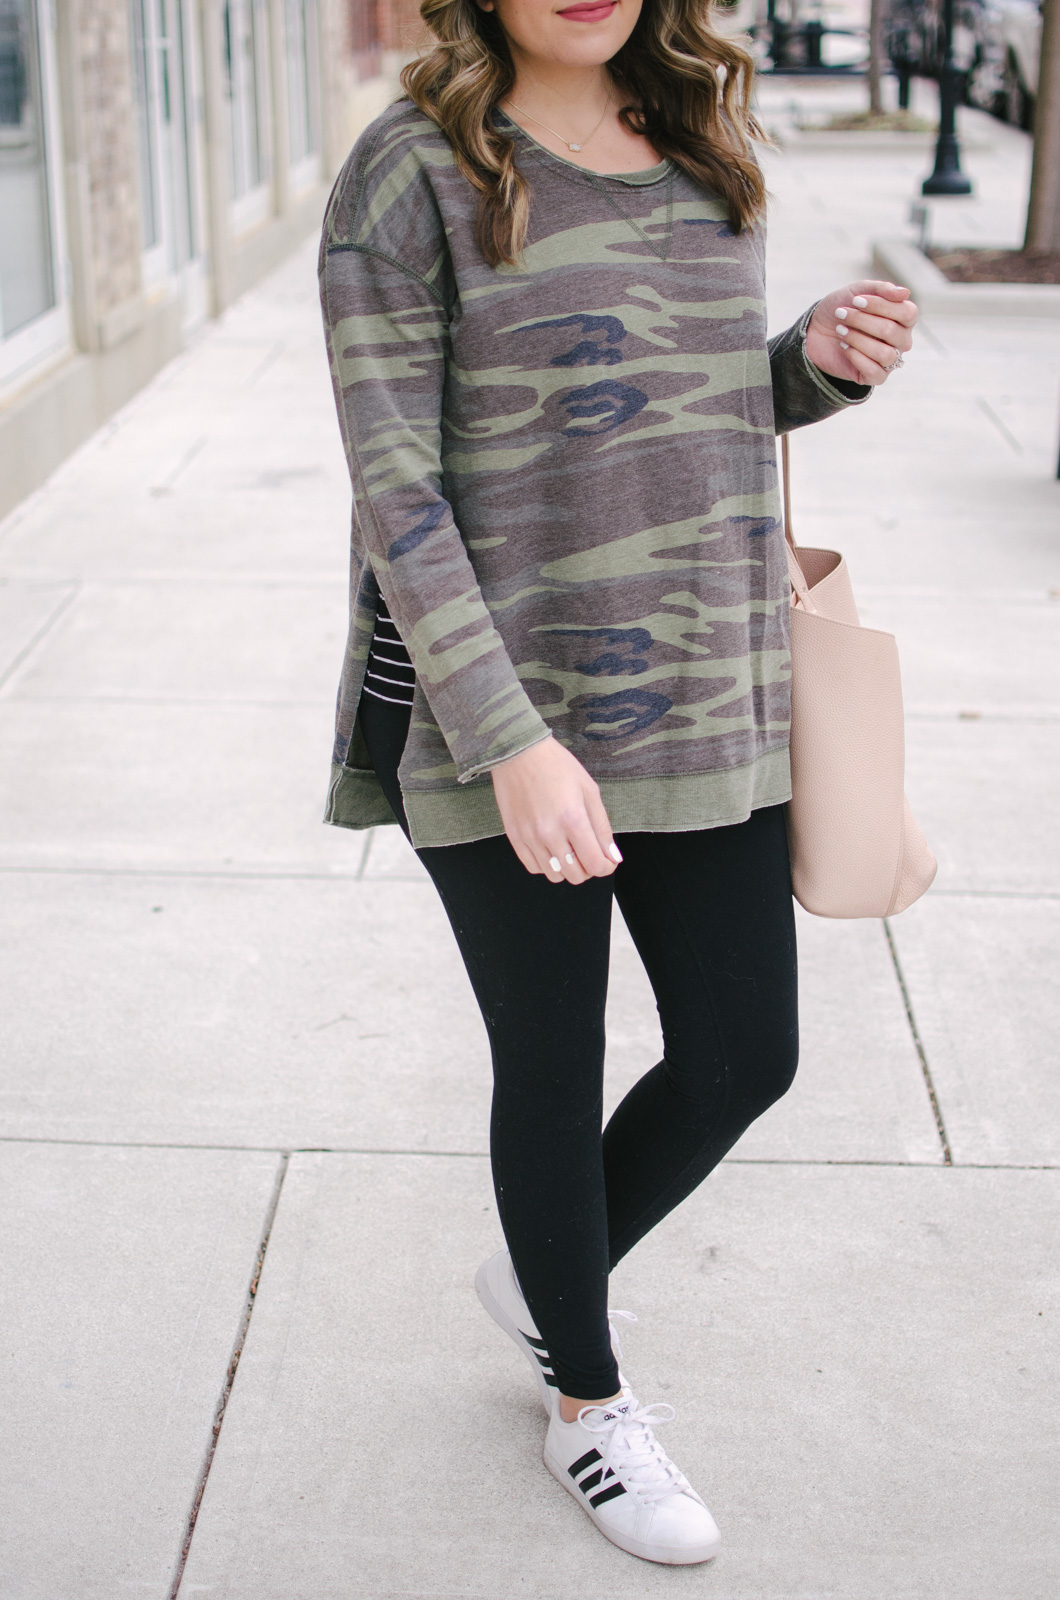 my current fav winter leggings outfit - I love this mix of camo and stripes | Get all the outfit details or see more cute leggings outfits at bylaurenm.com!